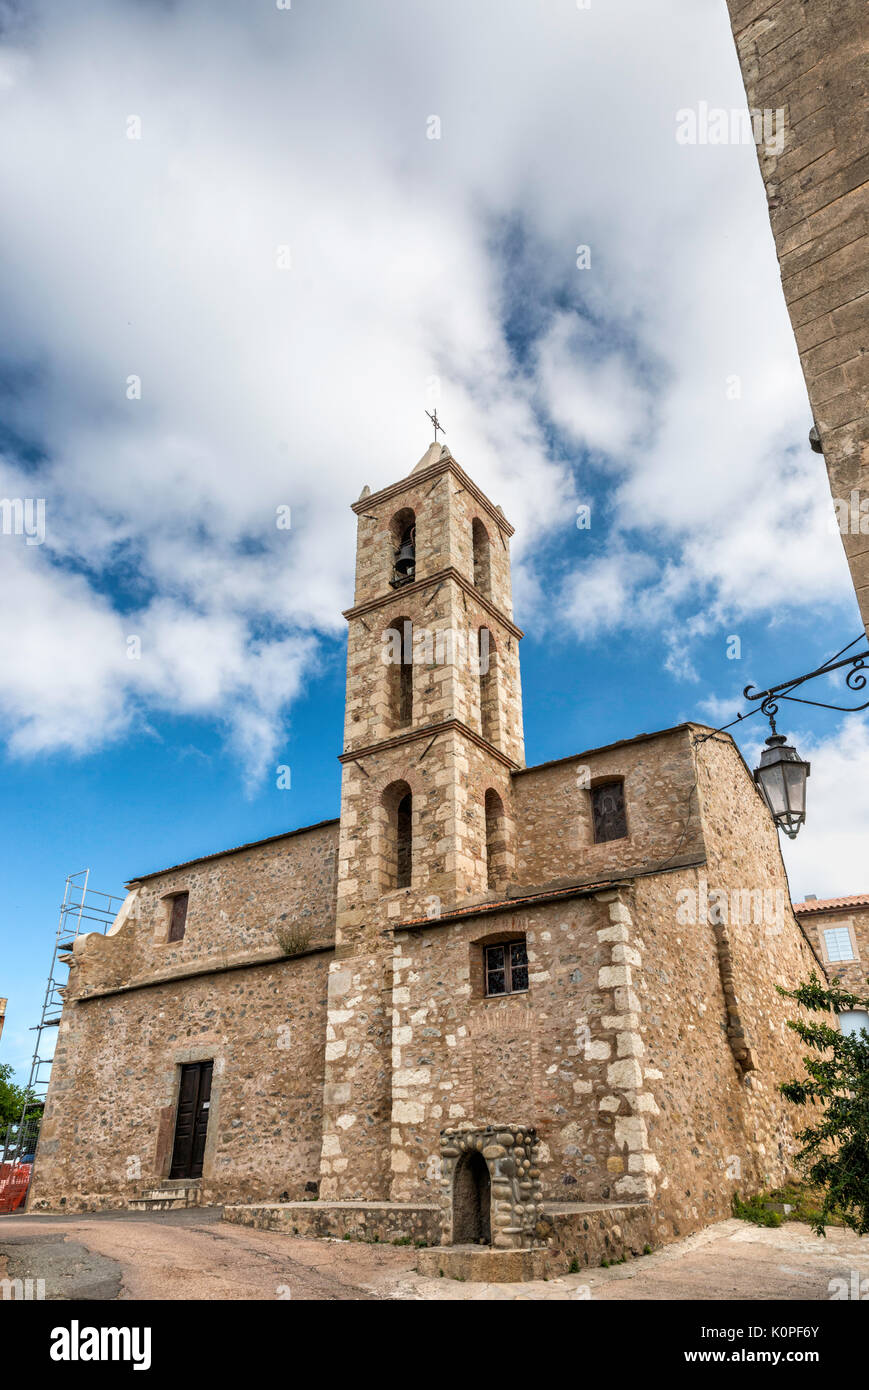 St-Marcel Church near Fort de Matra in Aleria, Corsica, France - Stock Image